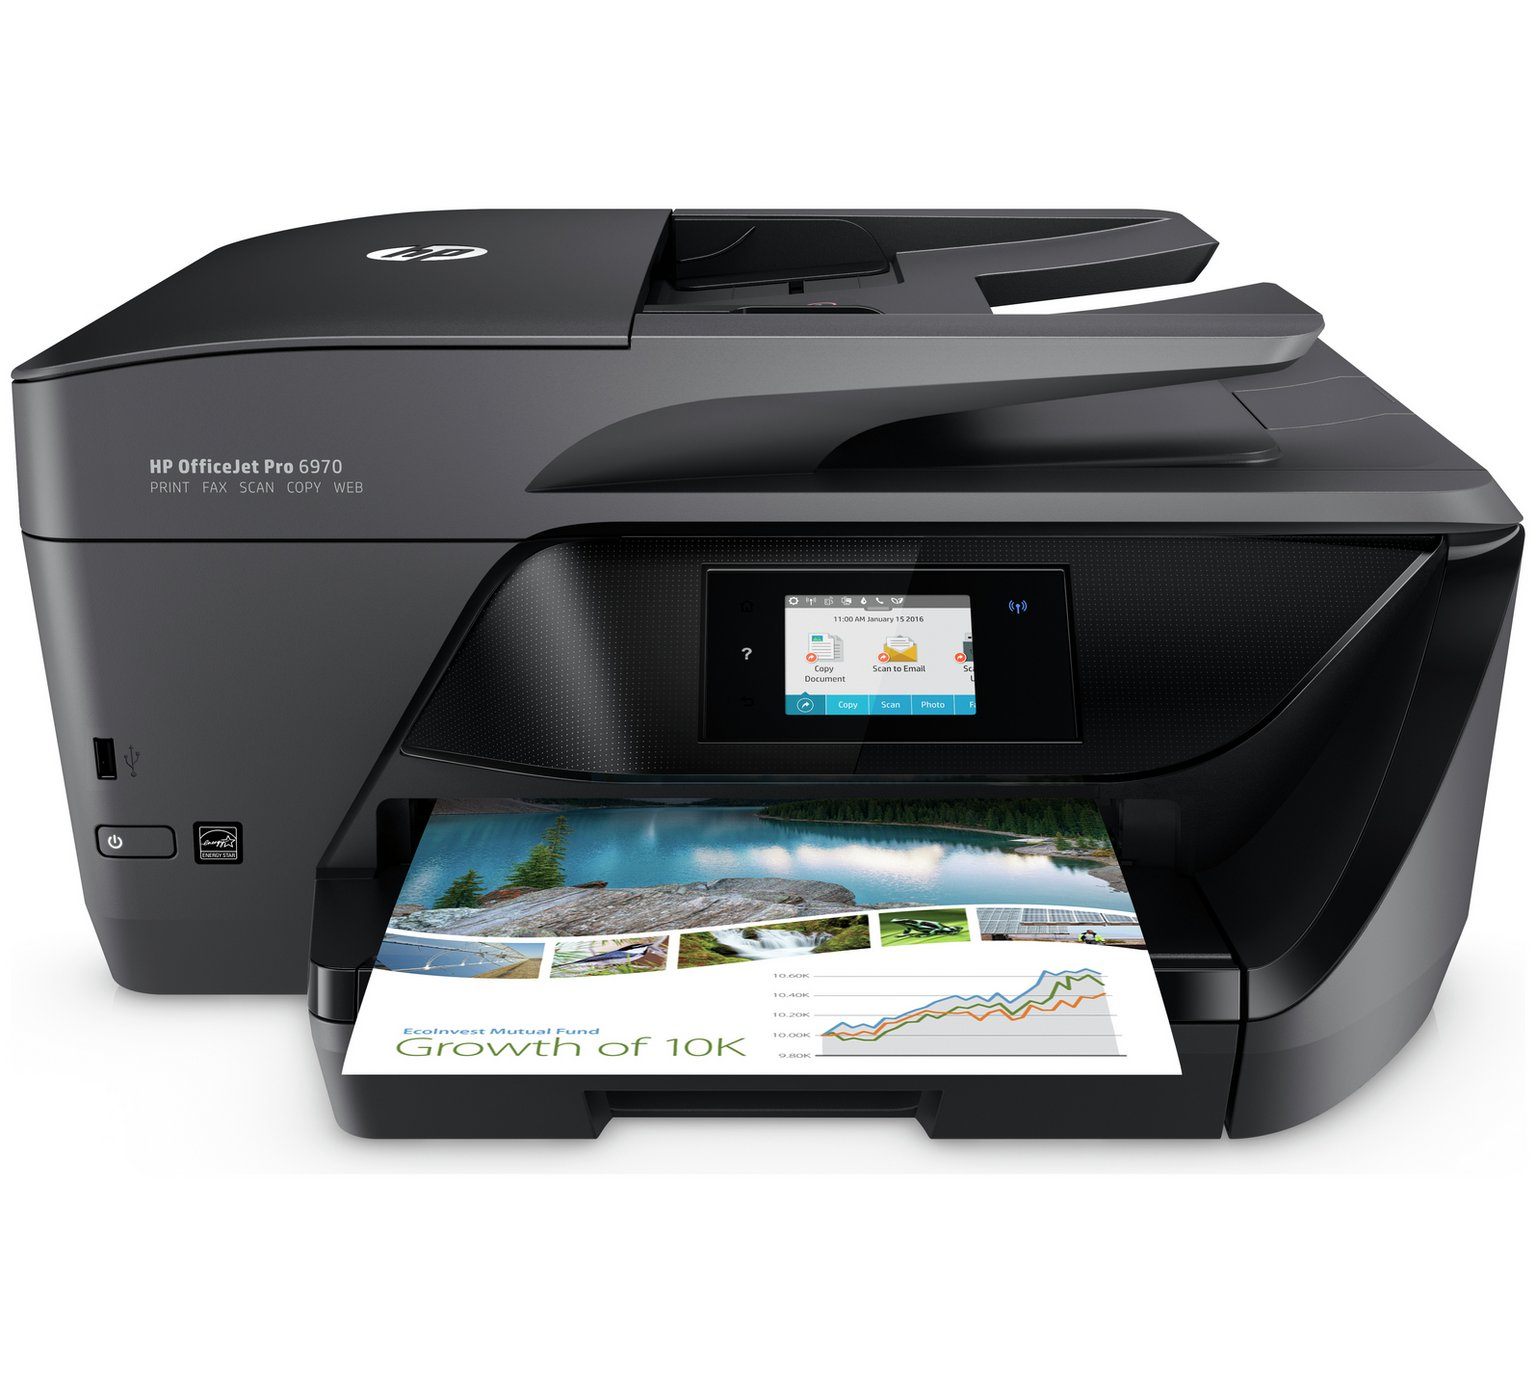 HP OfficeJet 6970 All-in-One Printer,Fax & Instant Ink Trial